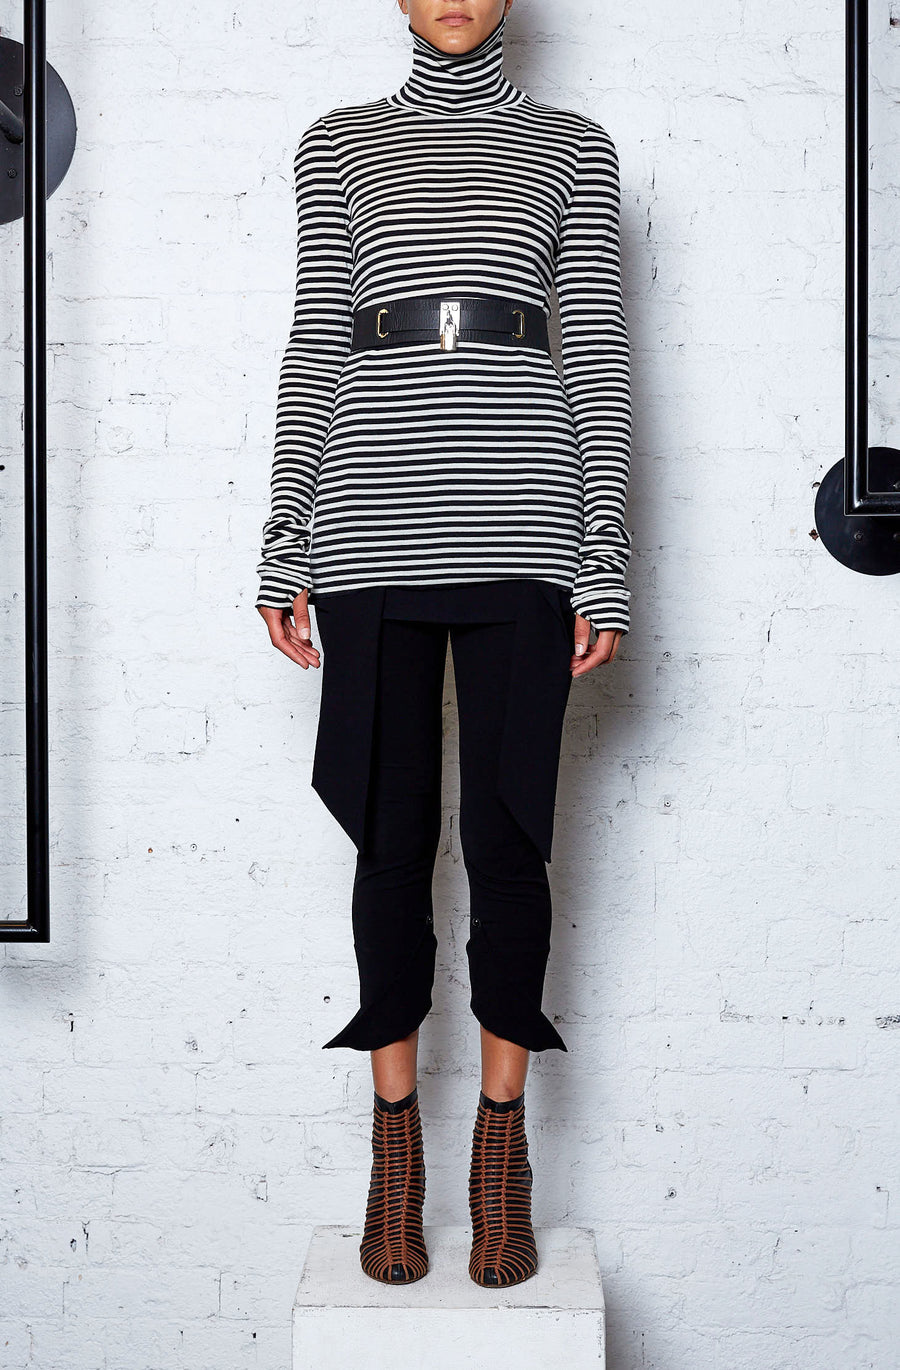 Circular Stripe Top - Black Cream